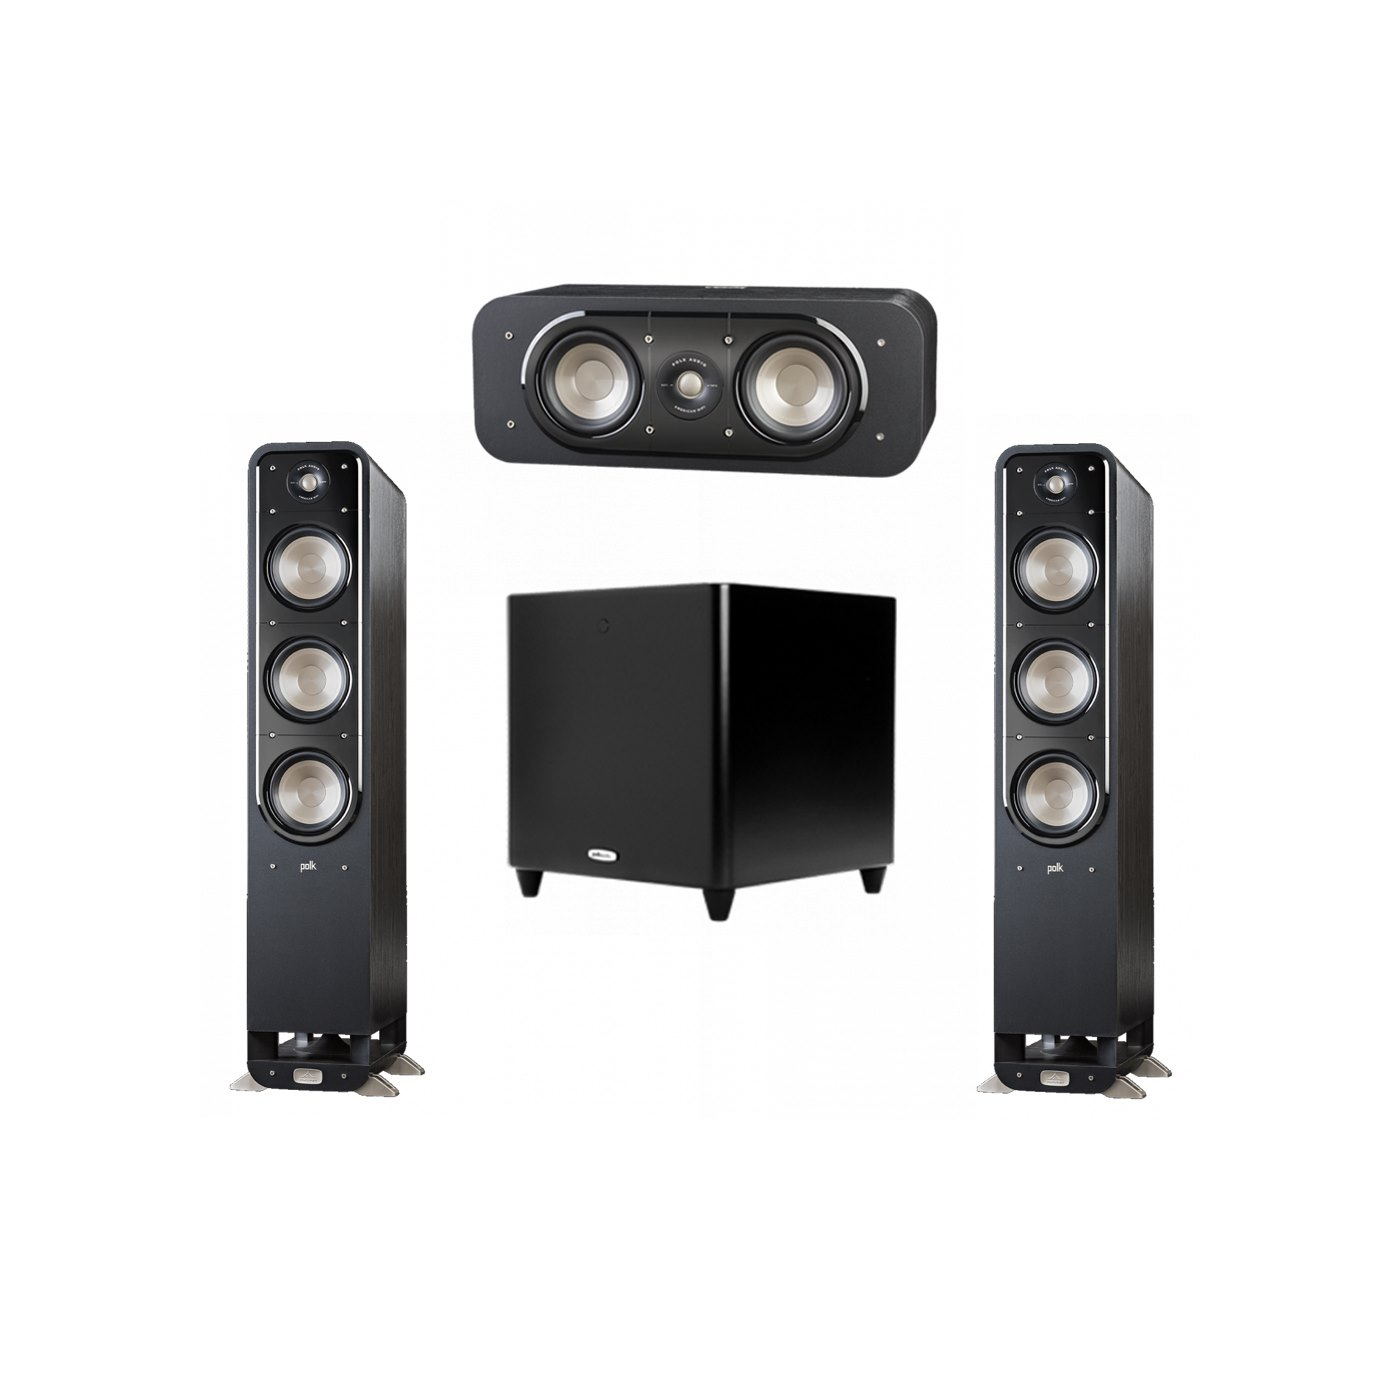 Polk Audio Signature 3.1 System with 2 S60 Tower Speaker, 1 Polk S30 Center Speaker, 1 Polk DSW PRO 660 wi Subwoofer